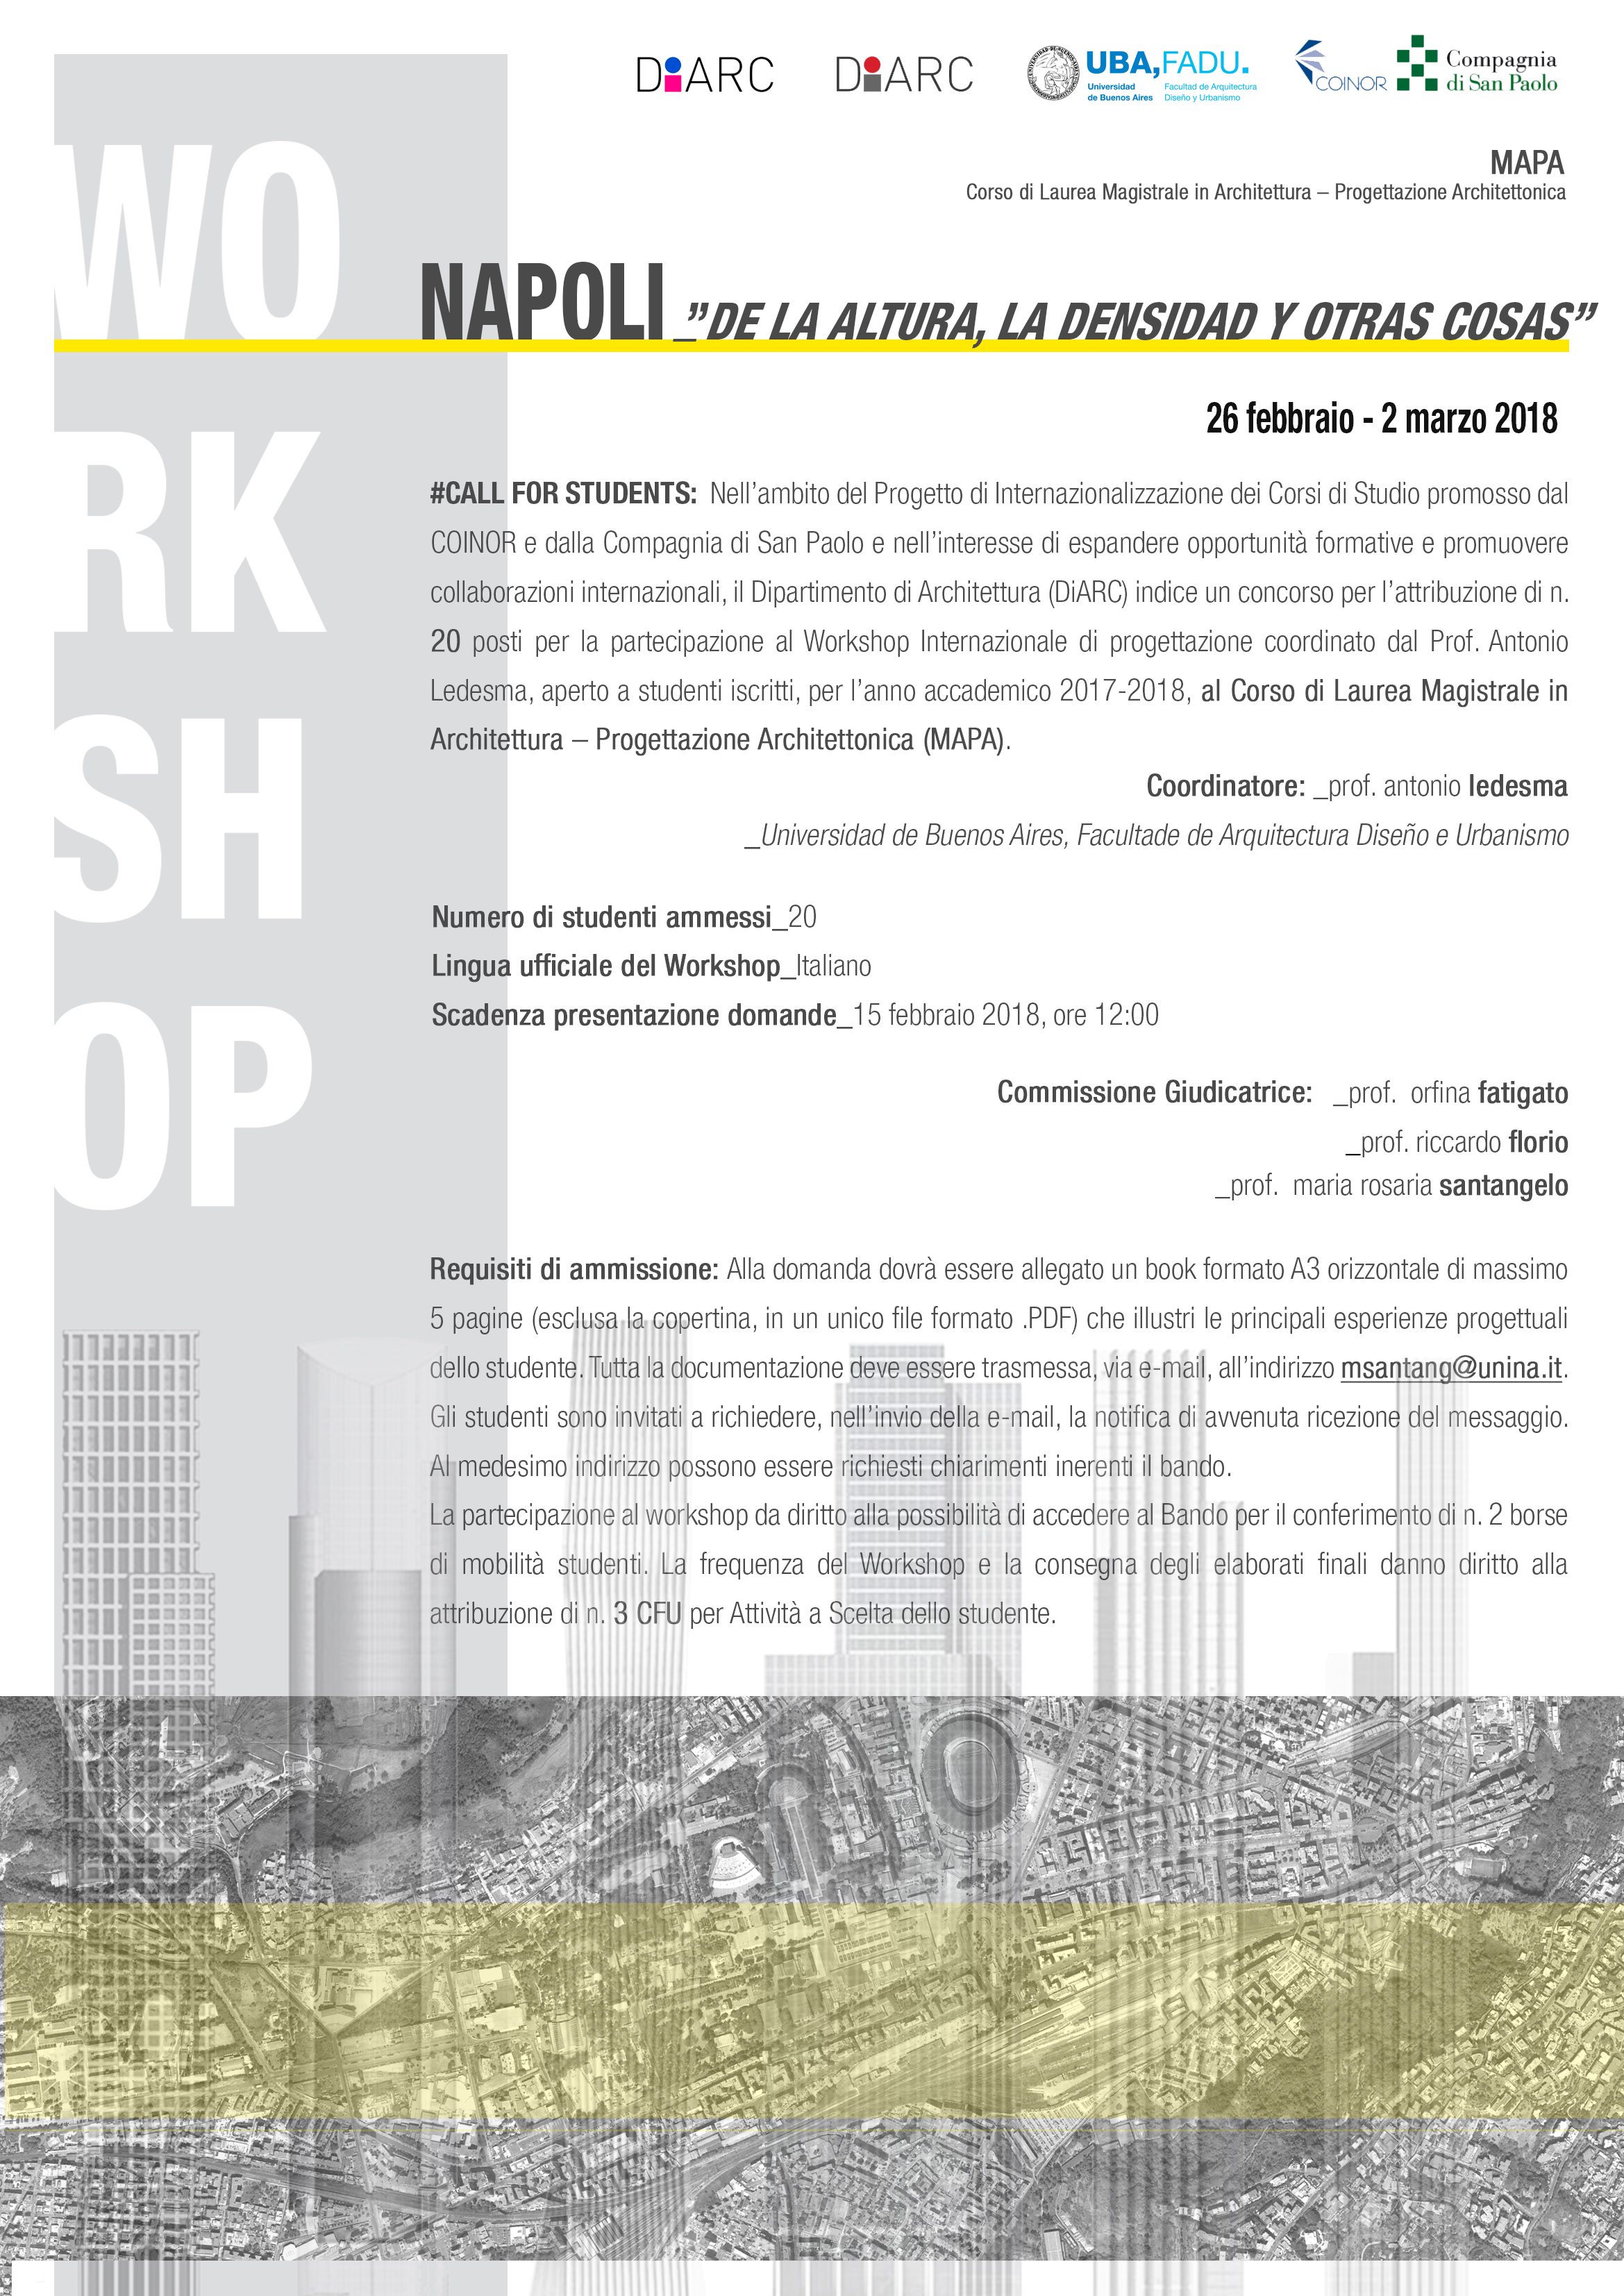 BANDO WORKSHOP 07.02